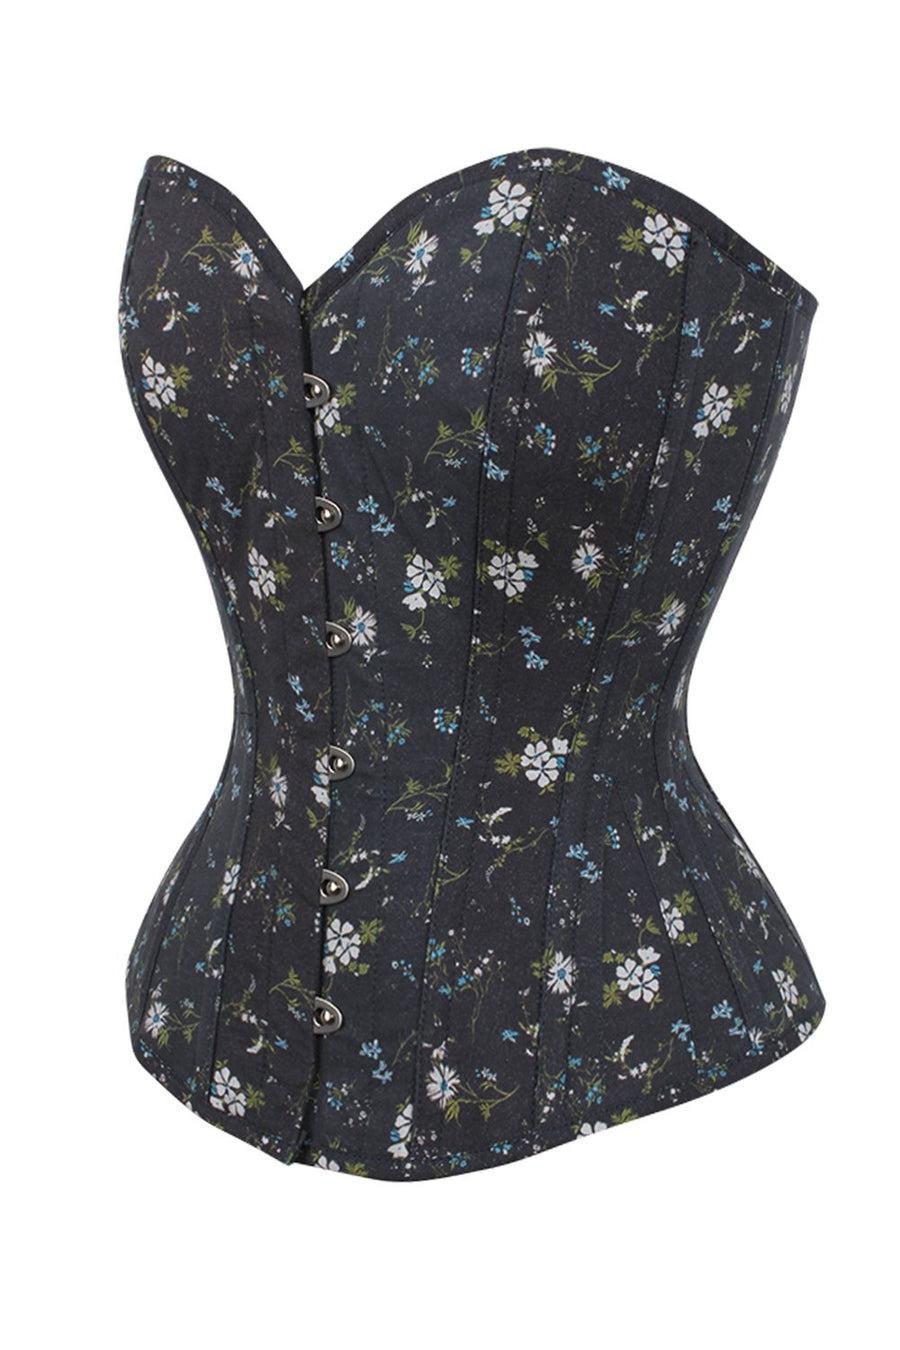 Ditsy Floral Printed Cotton Overbust Corset